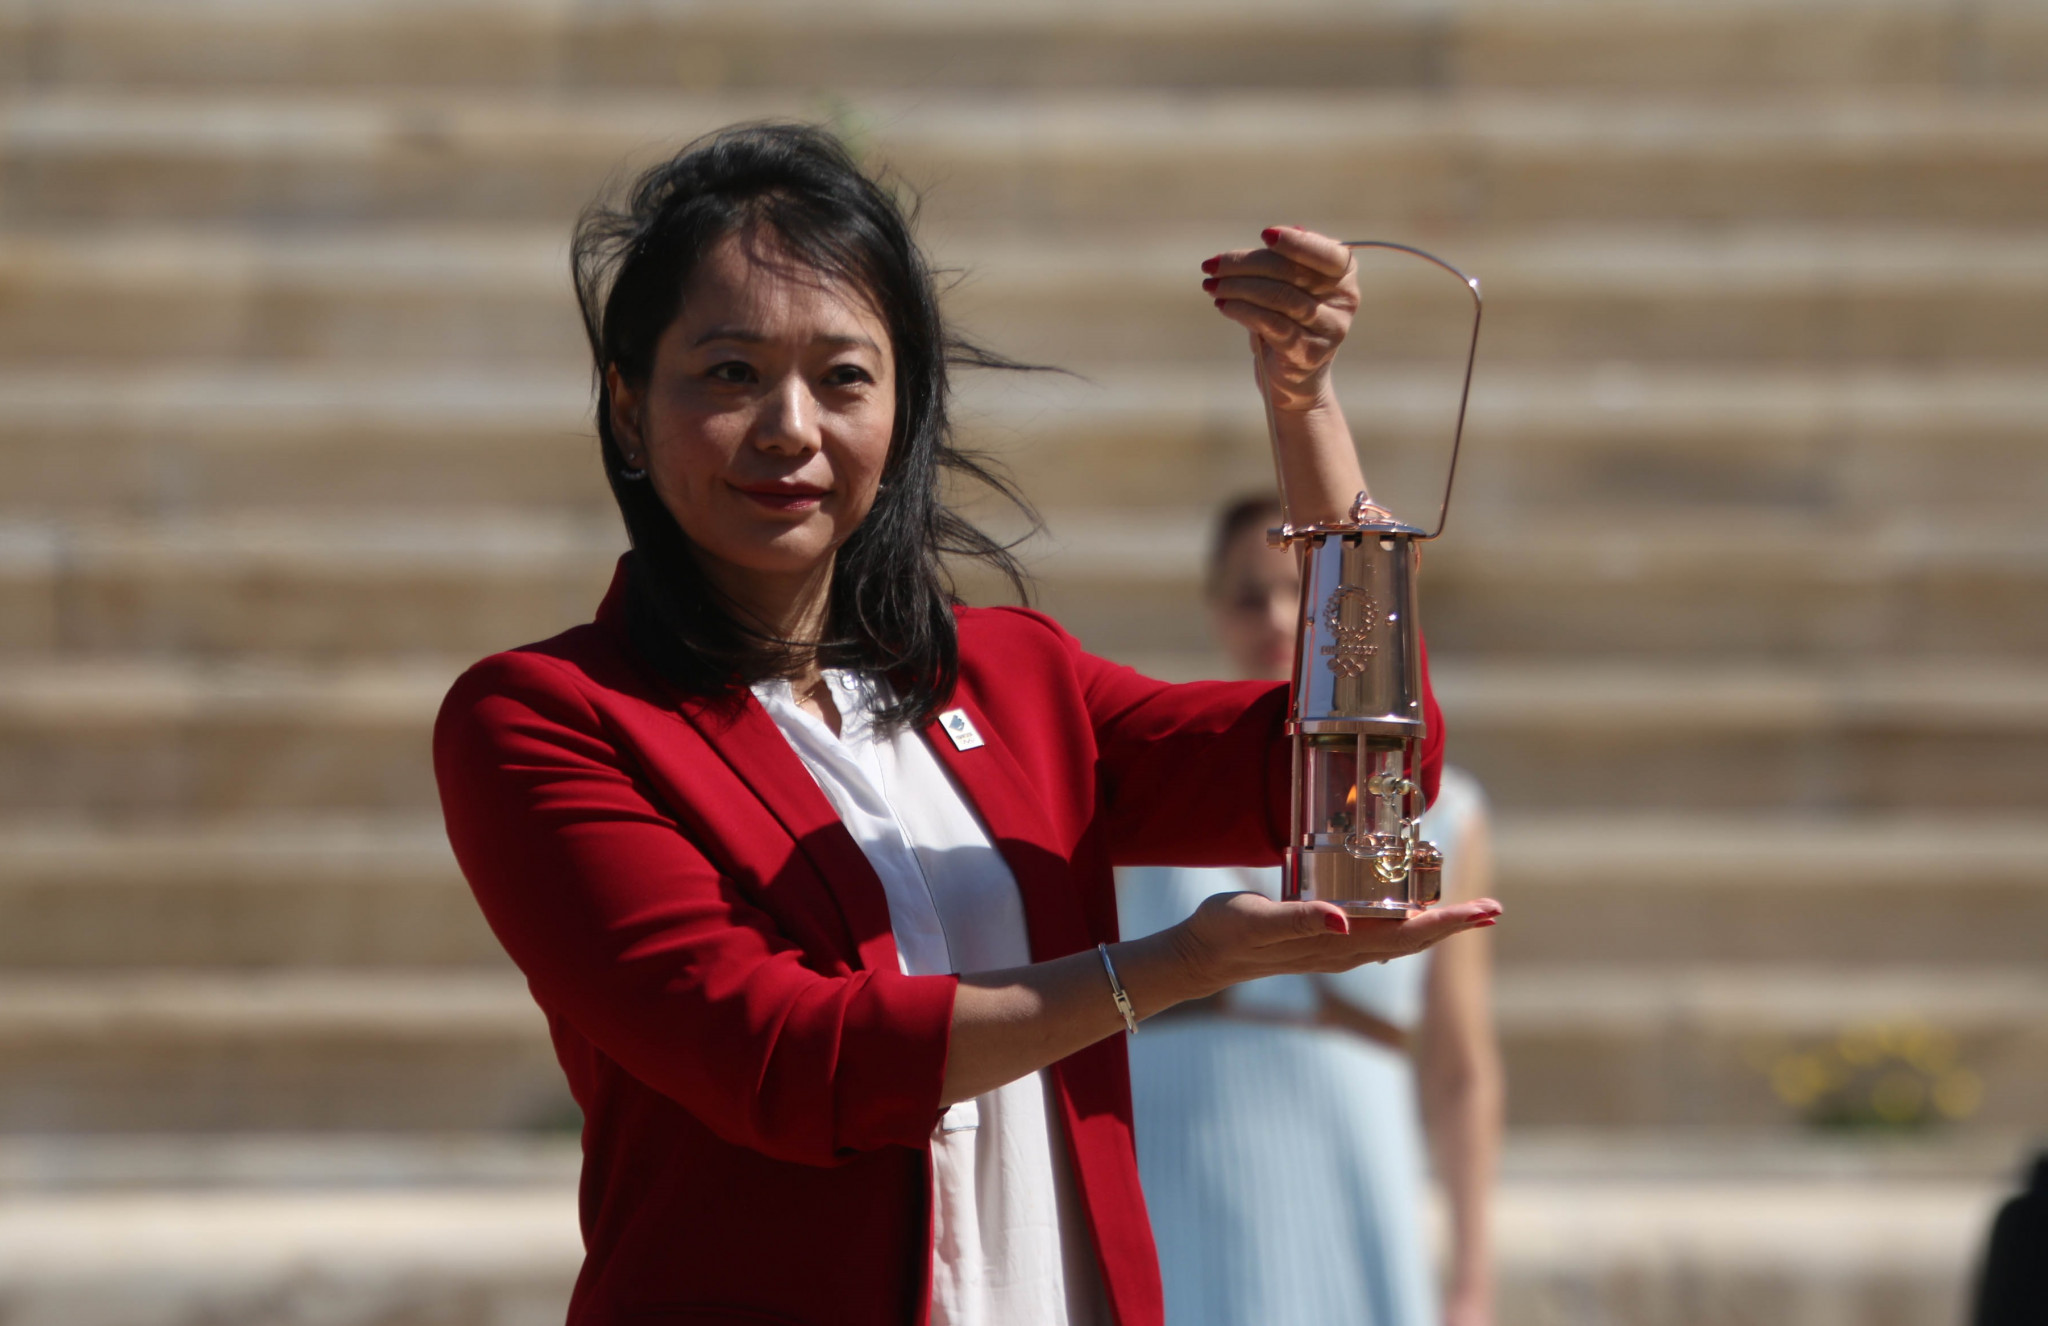 Swimming Olympian Naoko Imoto received the Olympic Flame on behalf of Tokyo 2020 in Athens ©Tokyo 2020